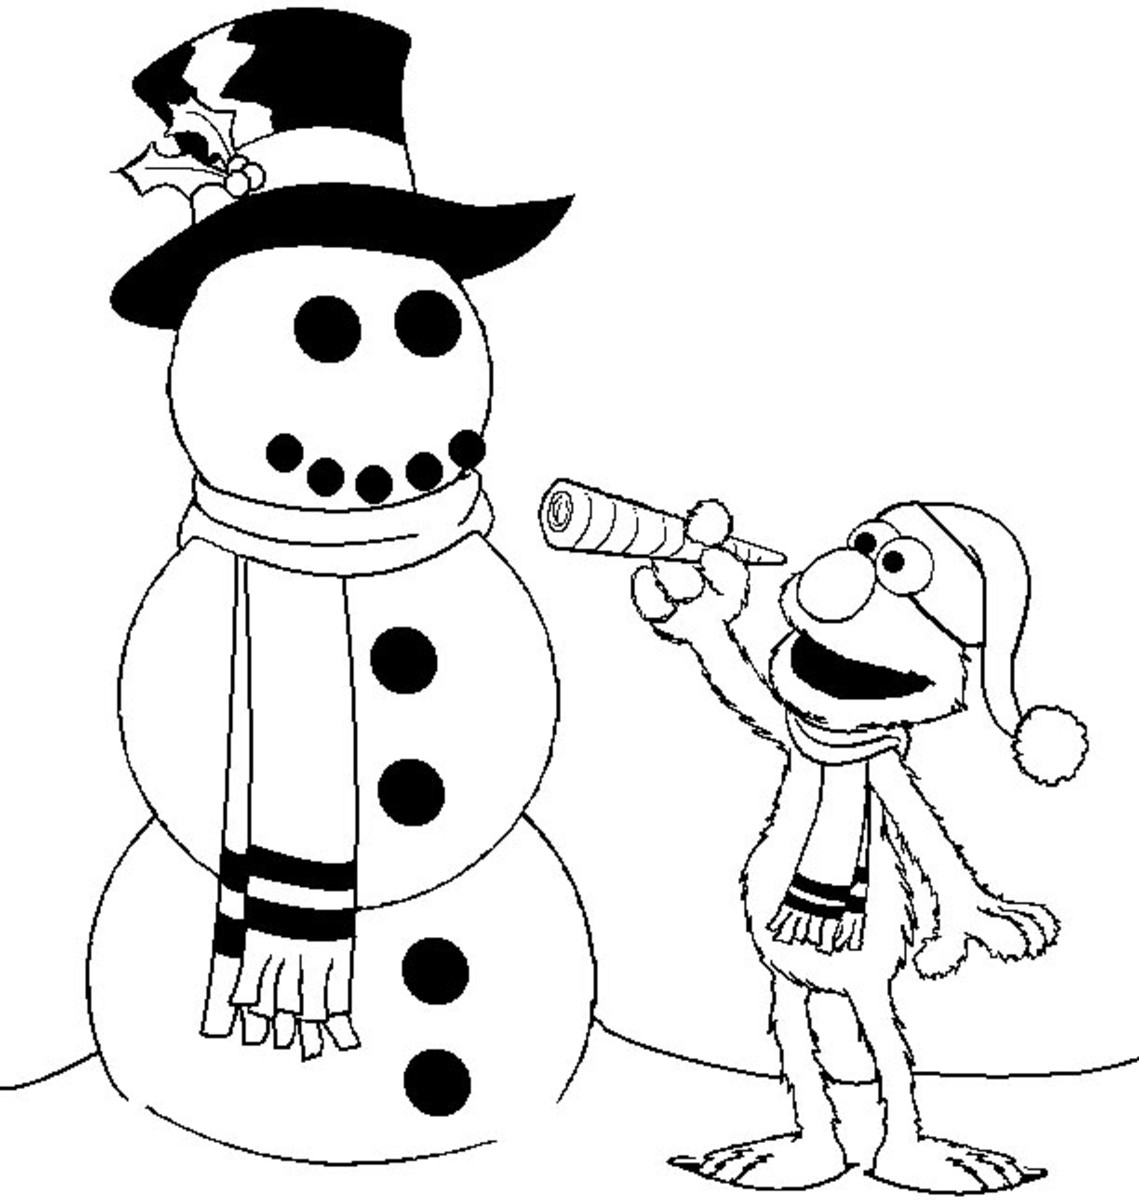 edmund finis relative coloring pages - photo#37